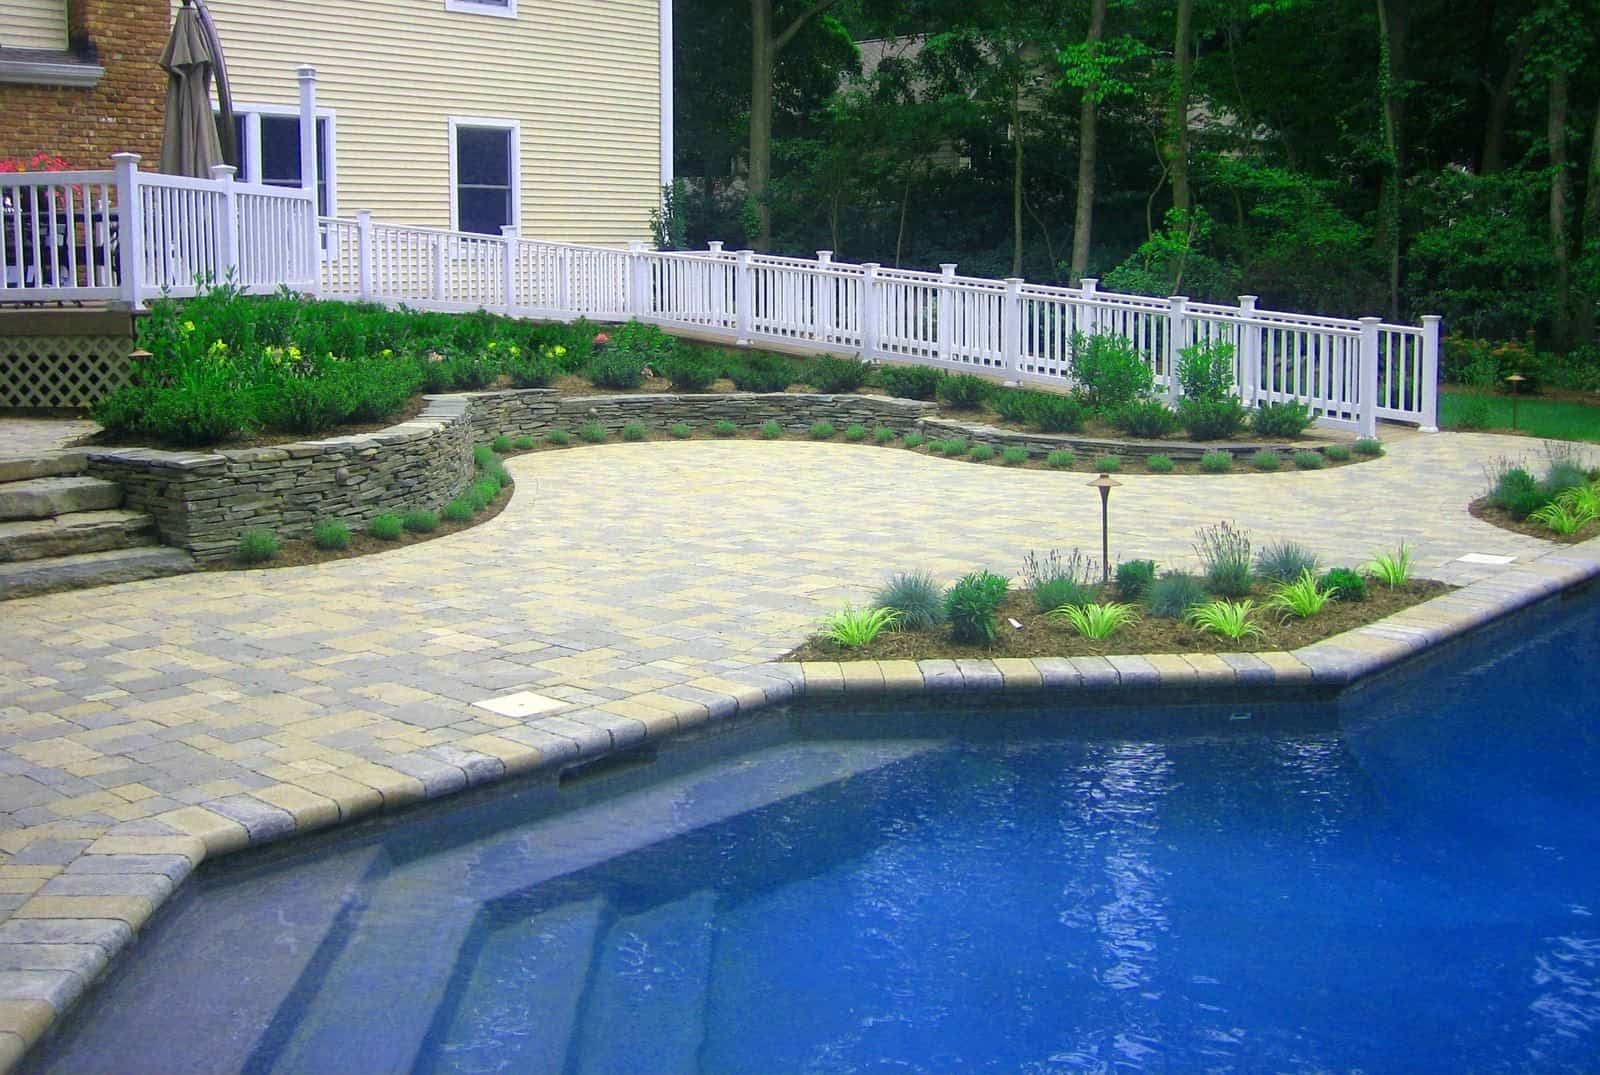 Paver Patio - Unilock Tumbled Brussels Block Pool Patio - Sandstone and Limestone Mix - Random Pattern - Dix Hills, Long Island NY